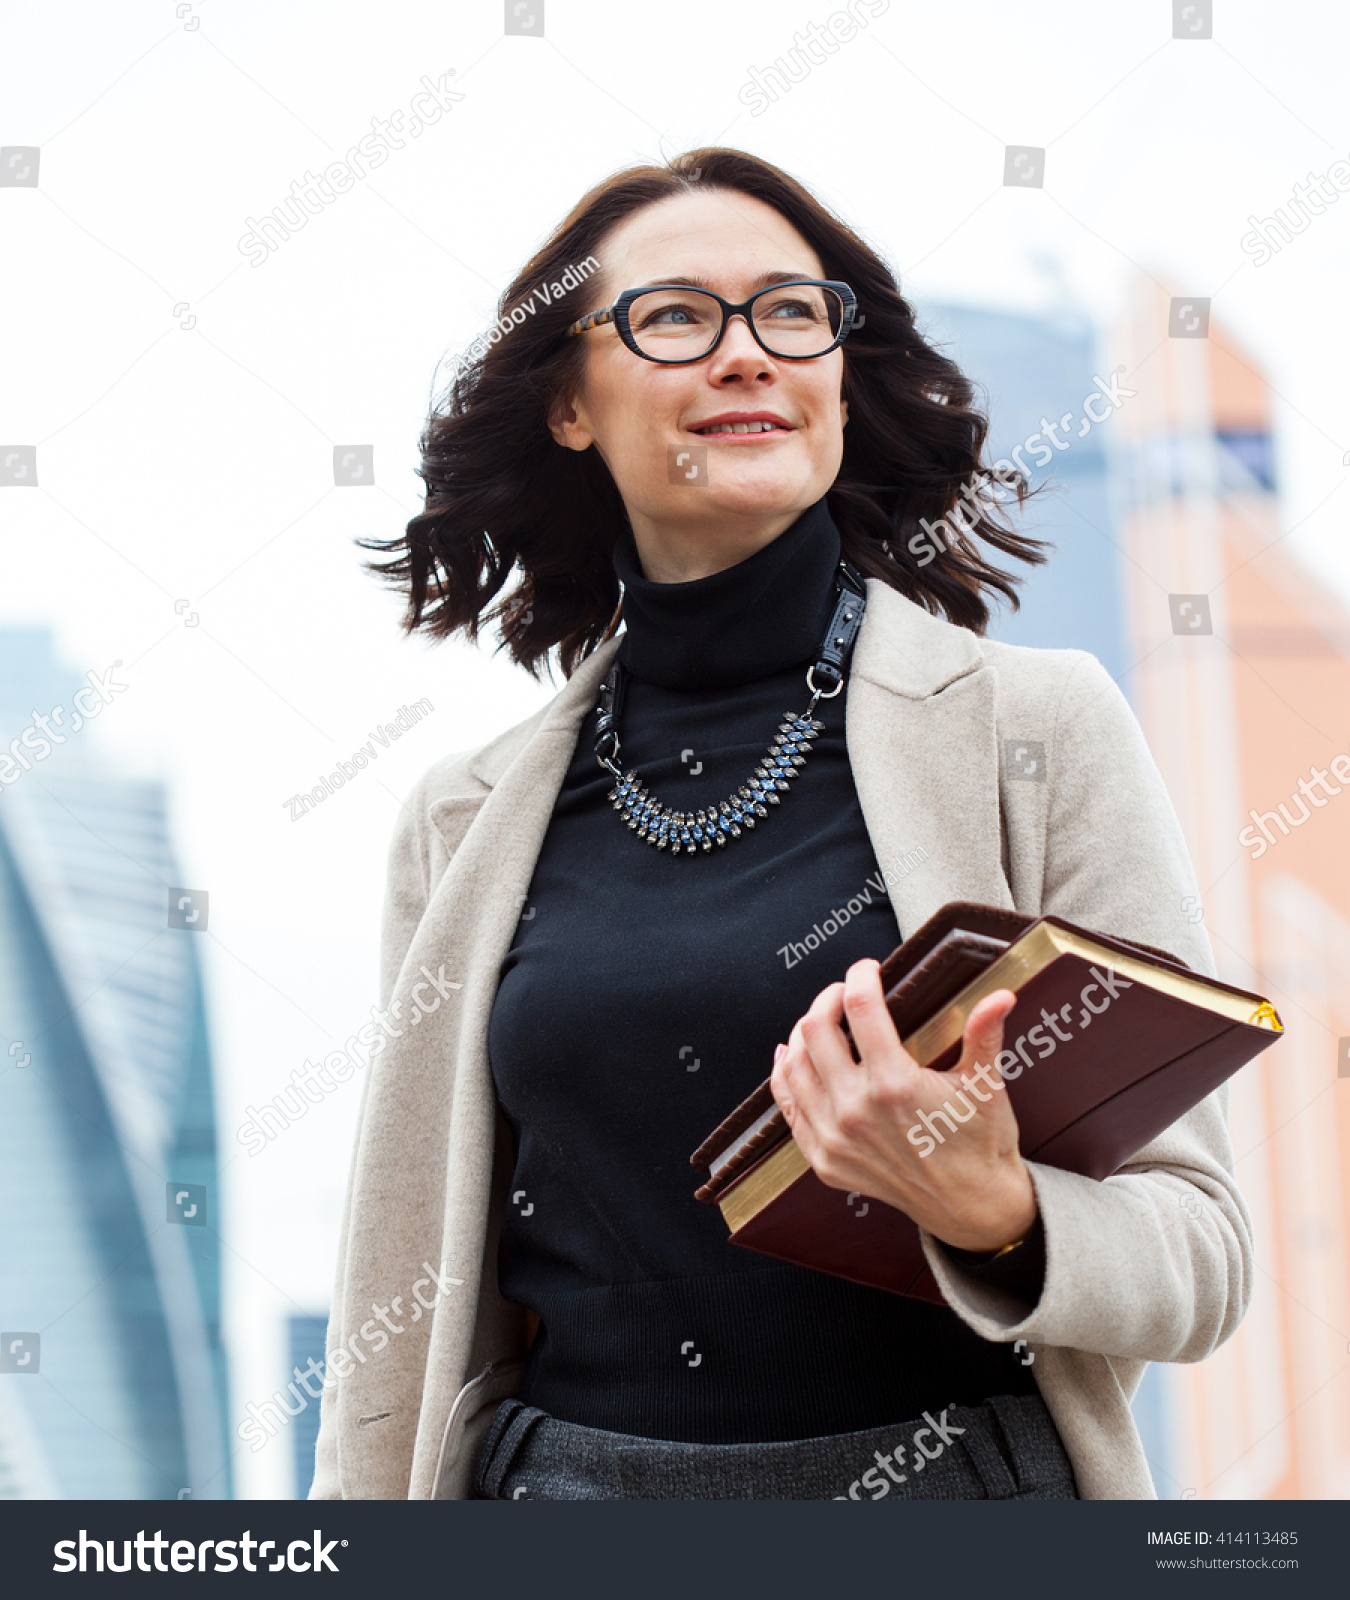 smiling middle-aged woman with glasses on his face and with books in their hands on open air